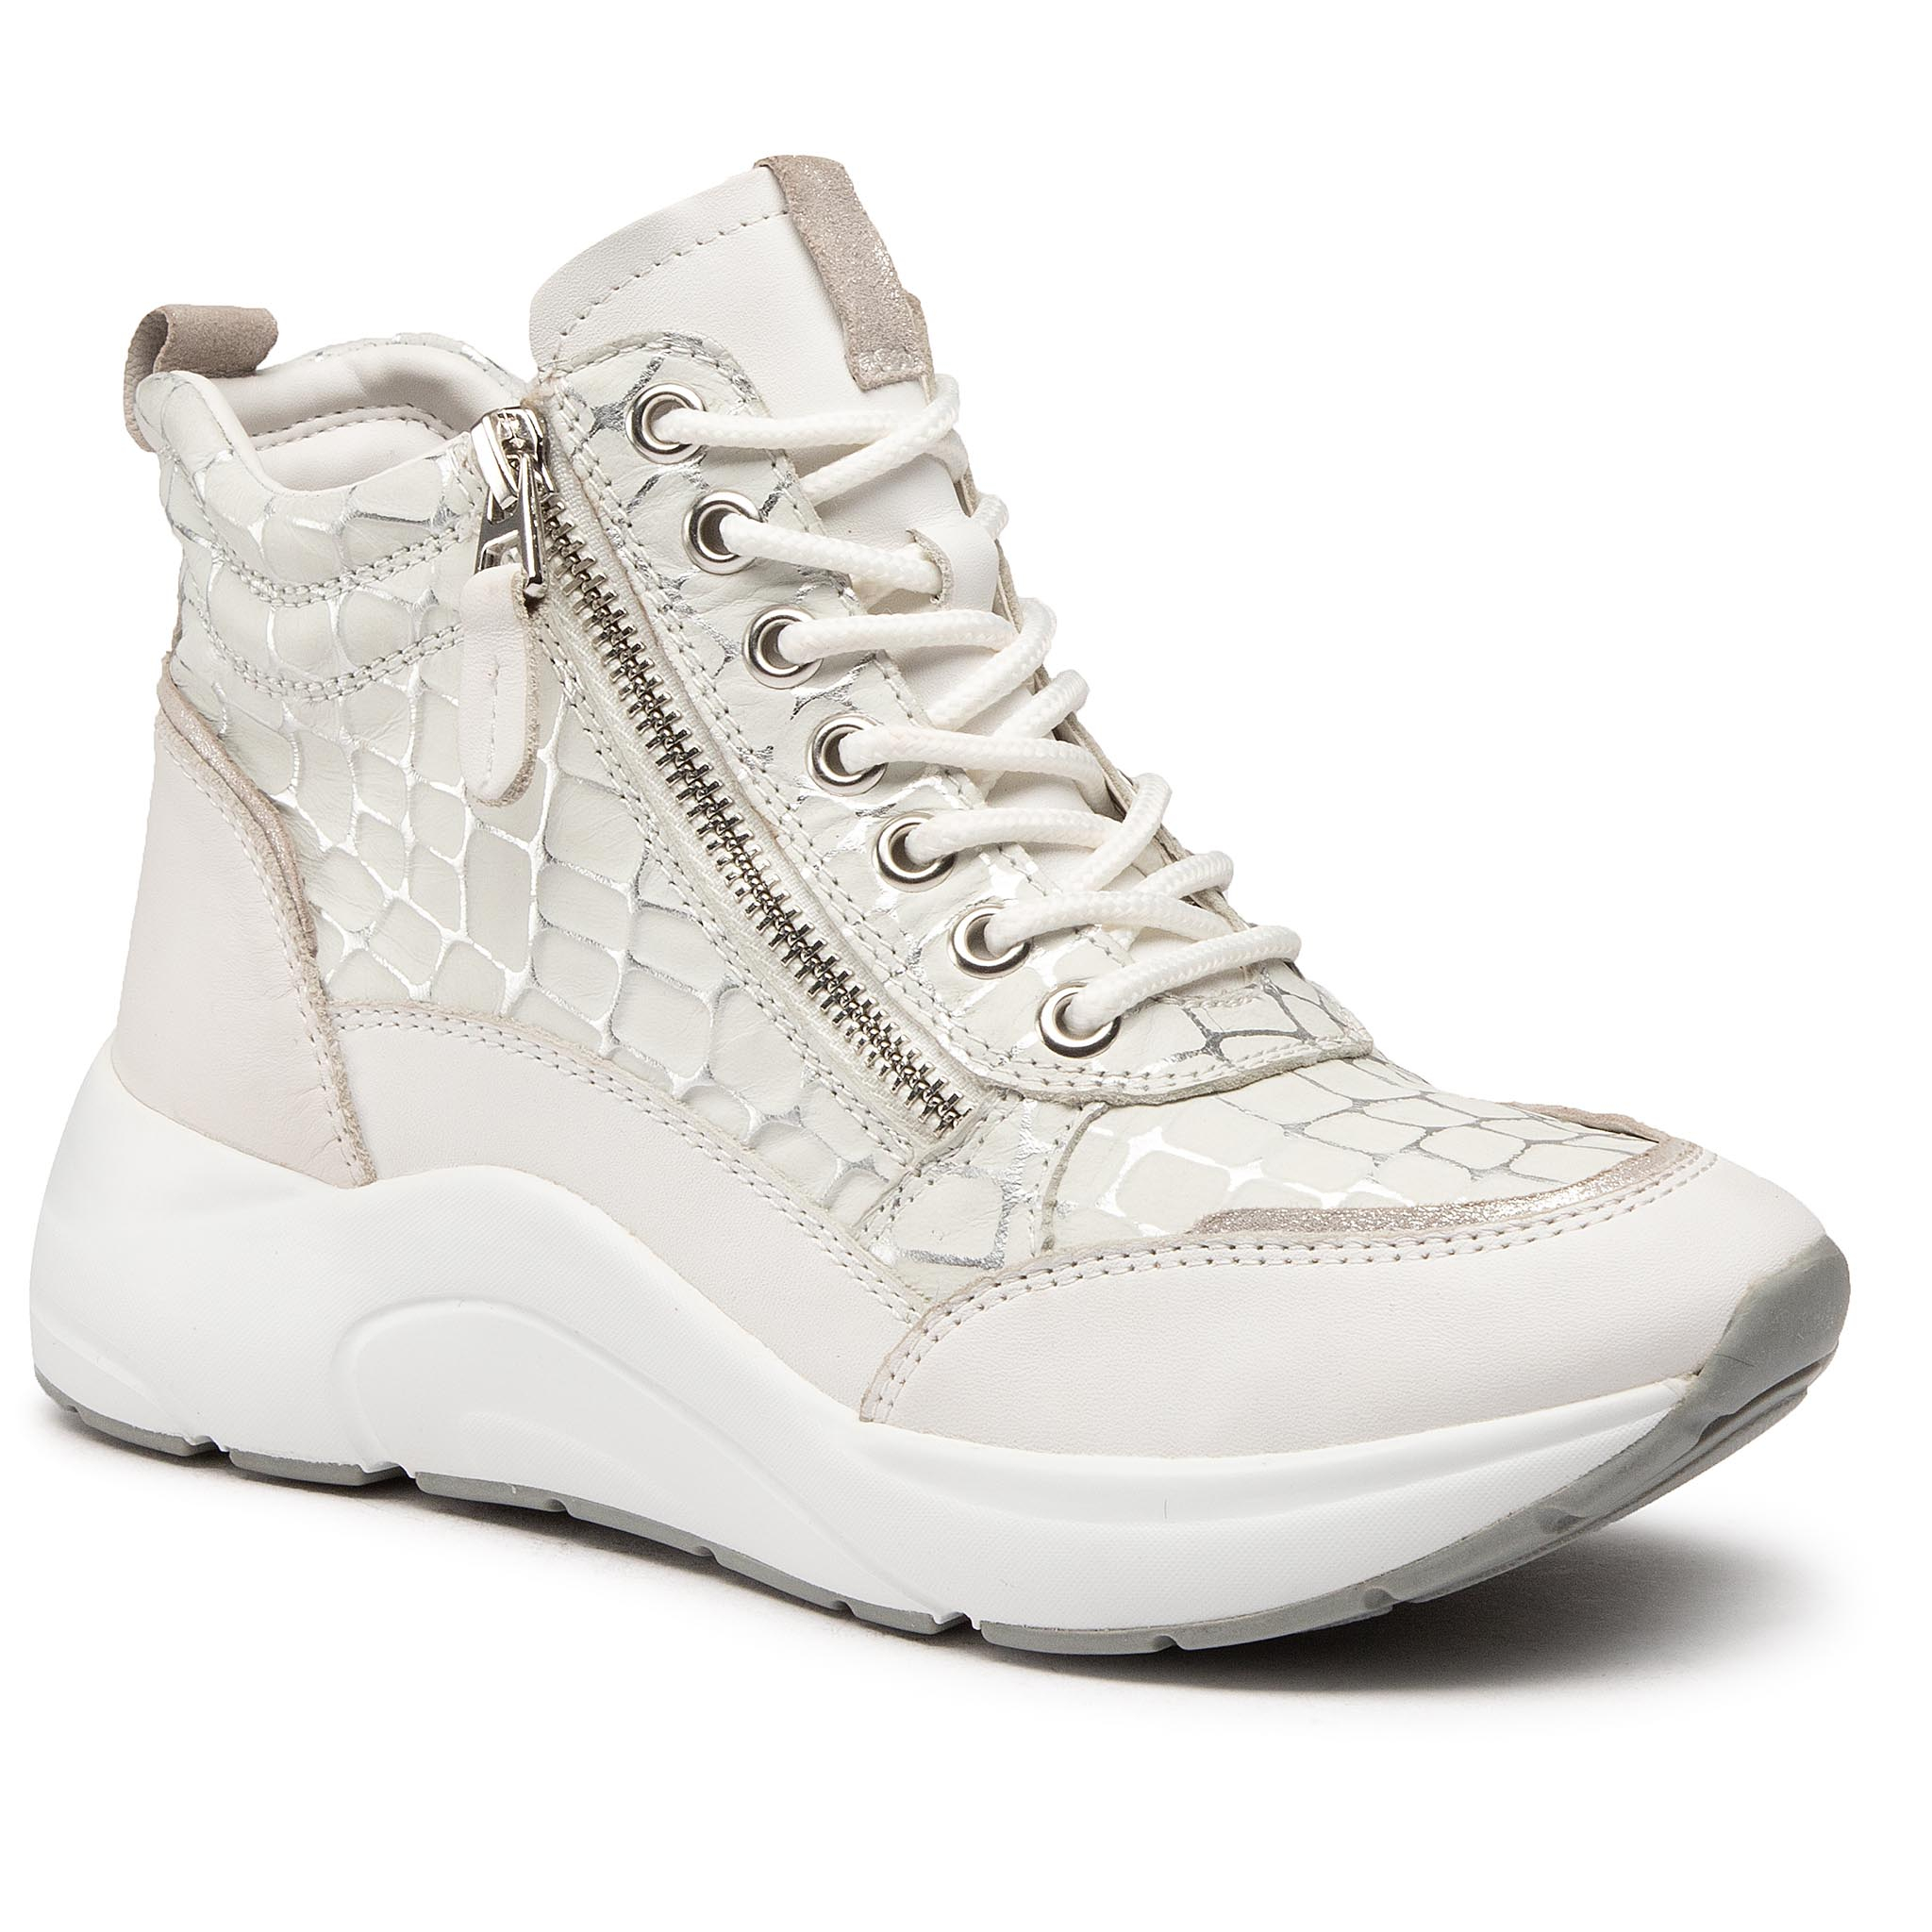 Image of Sneakers CAPRICE - 9-25202-25 White Comb 197